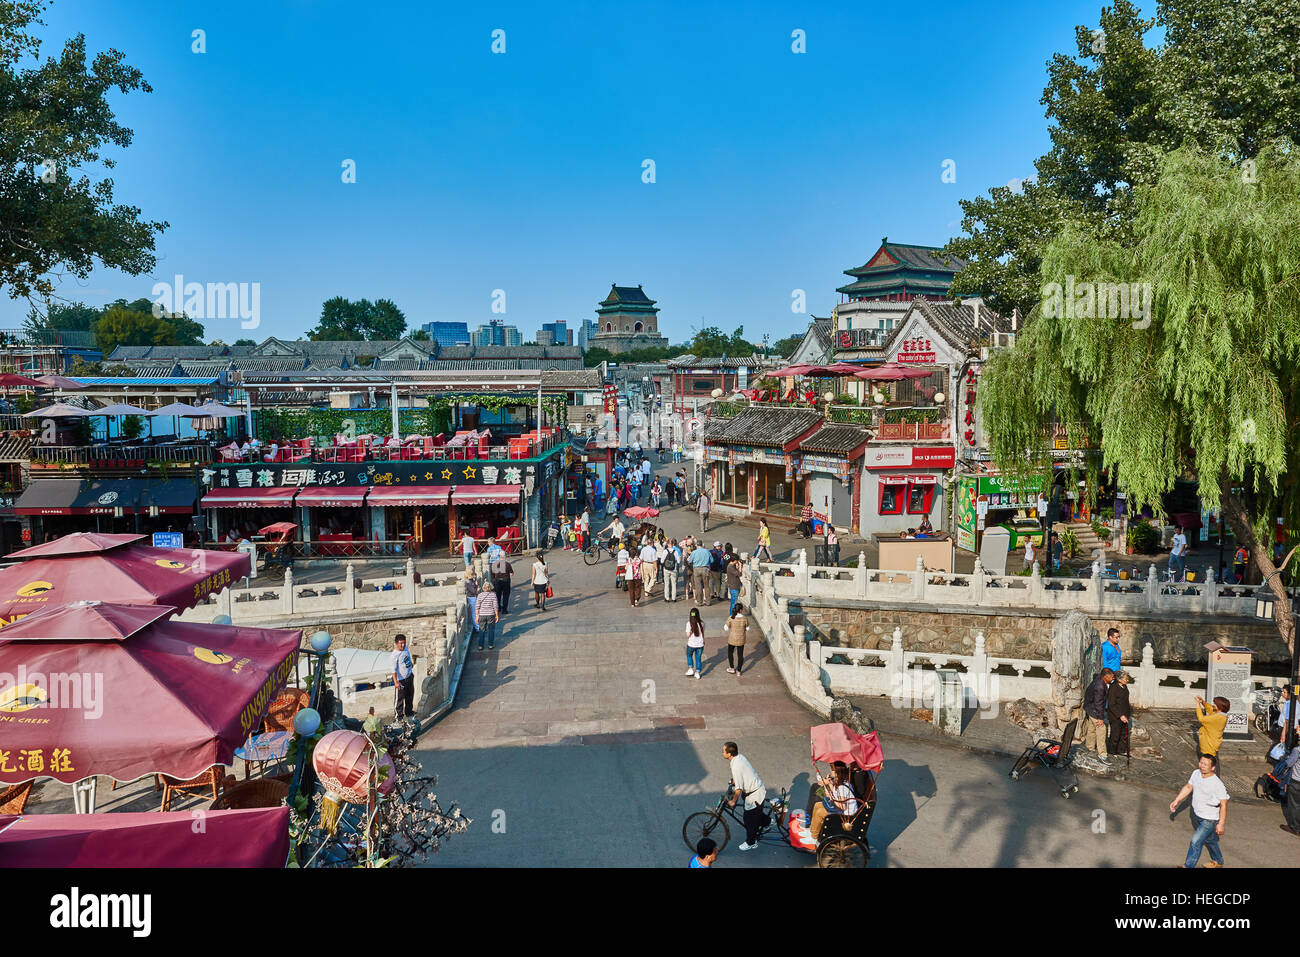 Beijing , China - September 24, 2014:  Chinese traditional Yindingqiao Hutong streets with people and tourist Beijing - Stock Image